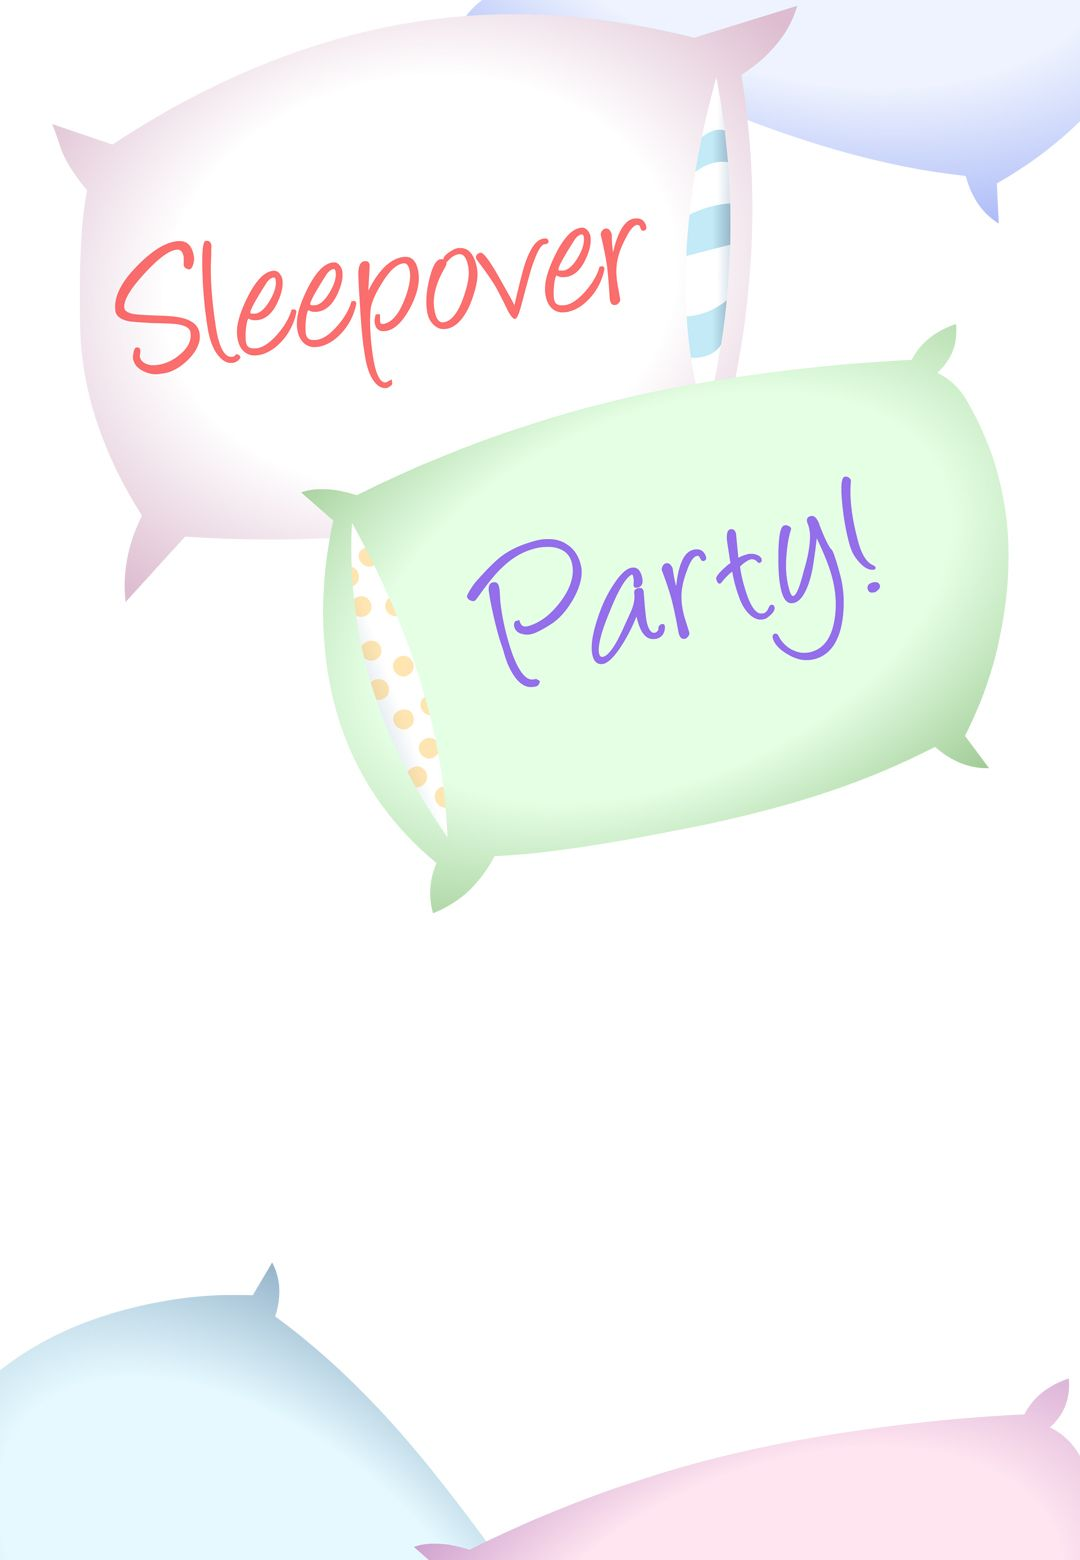 Free Printable Sleepover Party Invitation Helpful Hints cooking